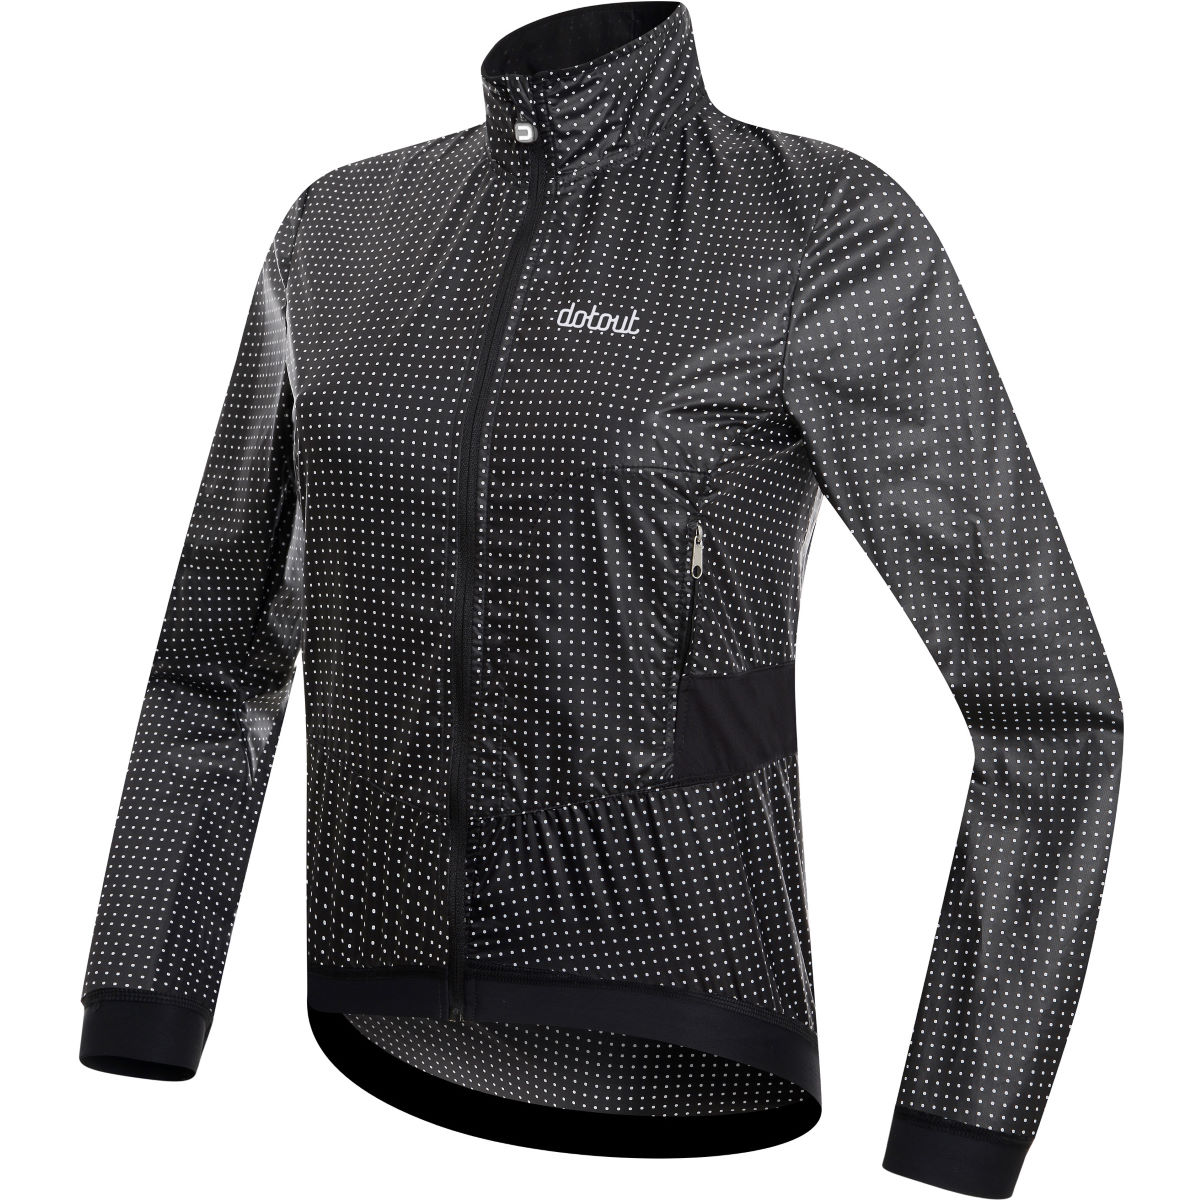 Veste Femme Dotout Tempo Pack - L Black - White Coupe-vents vélo